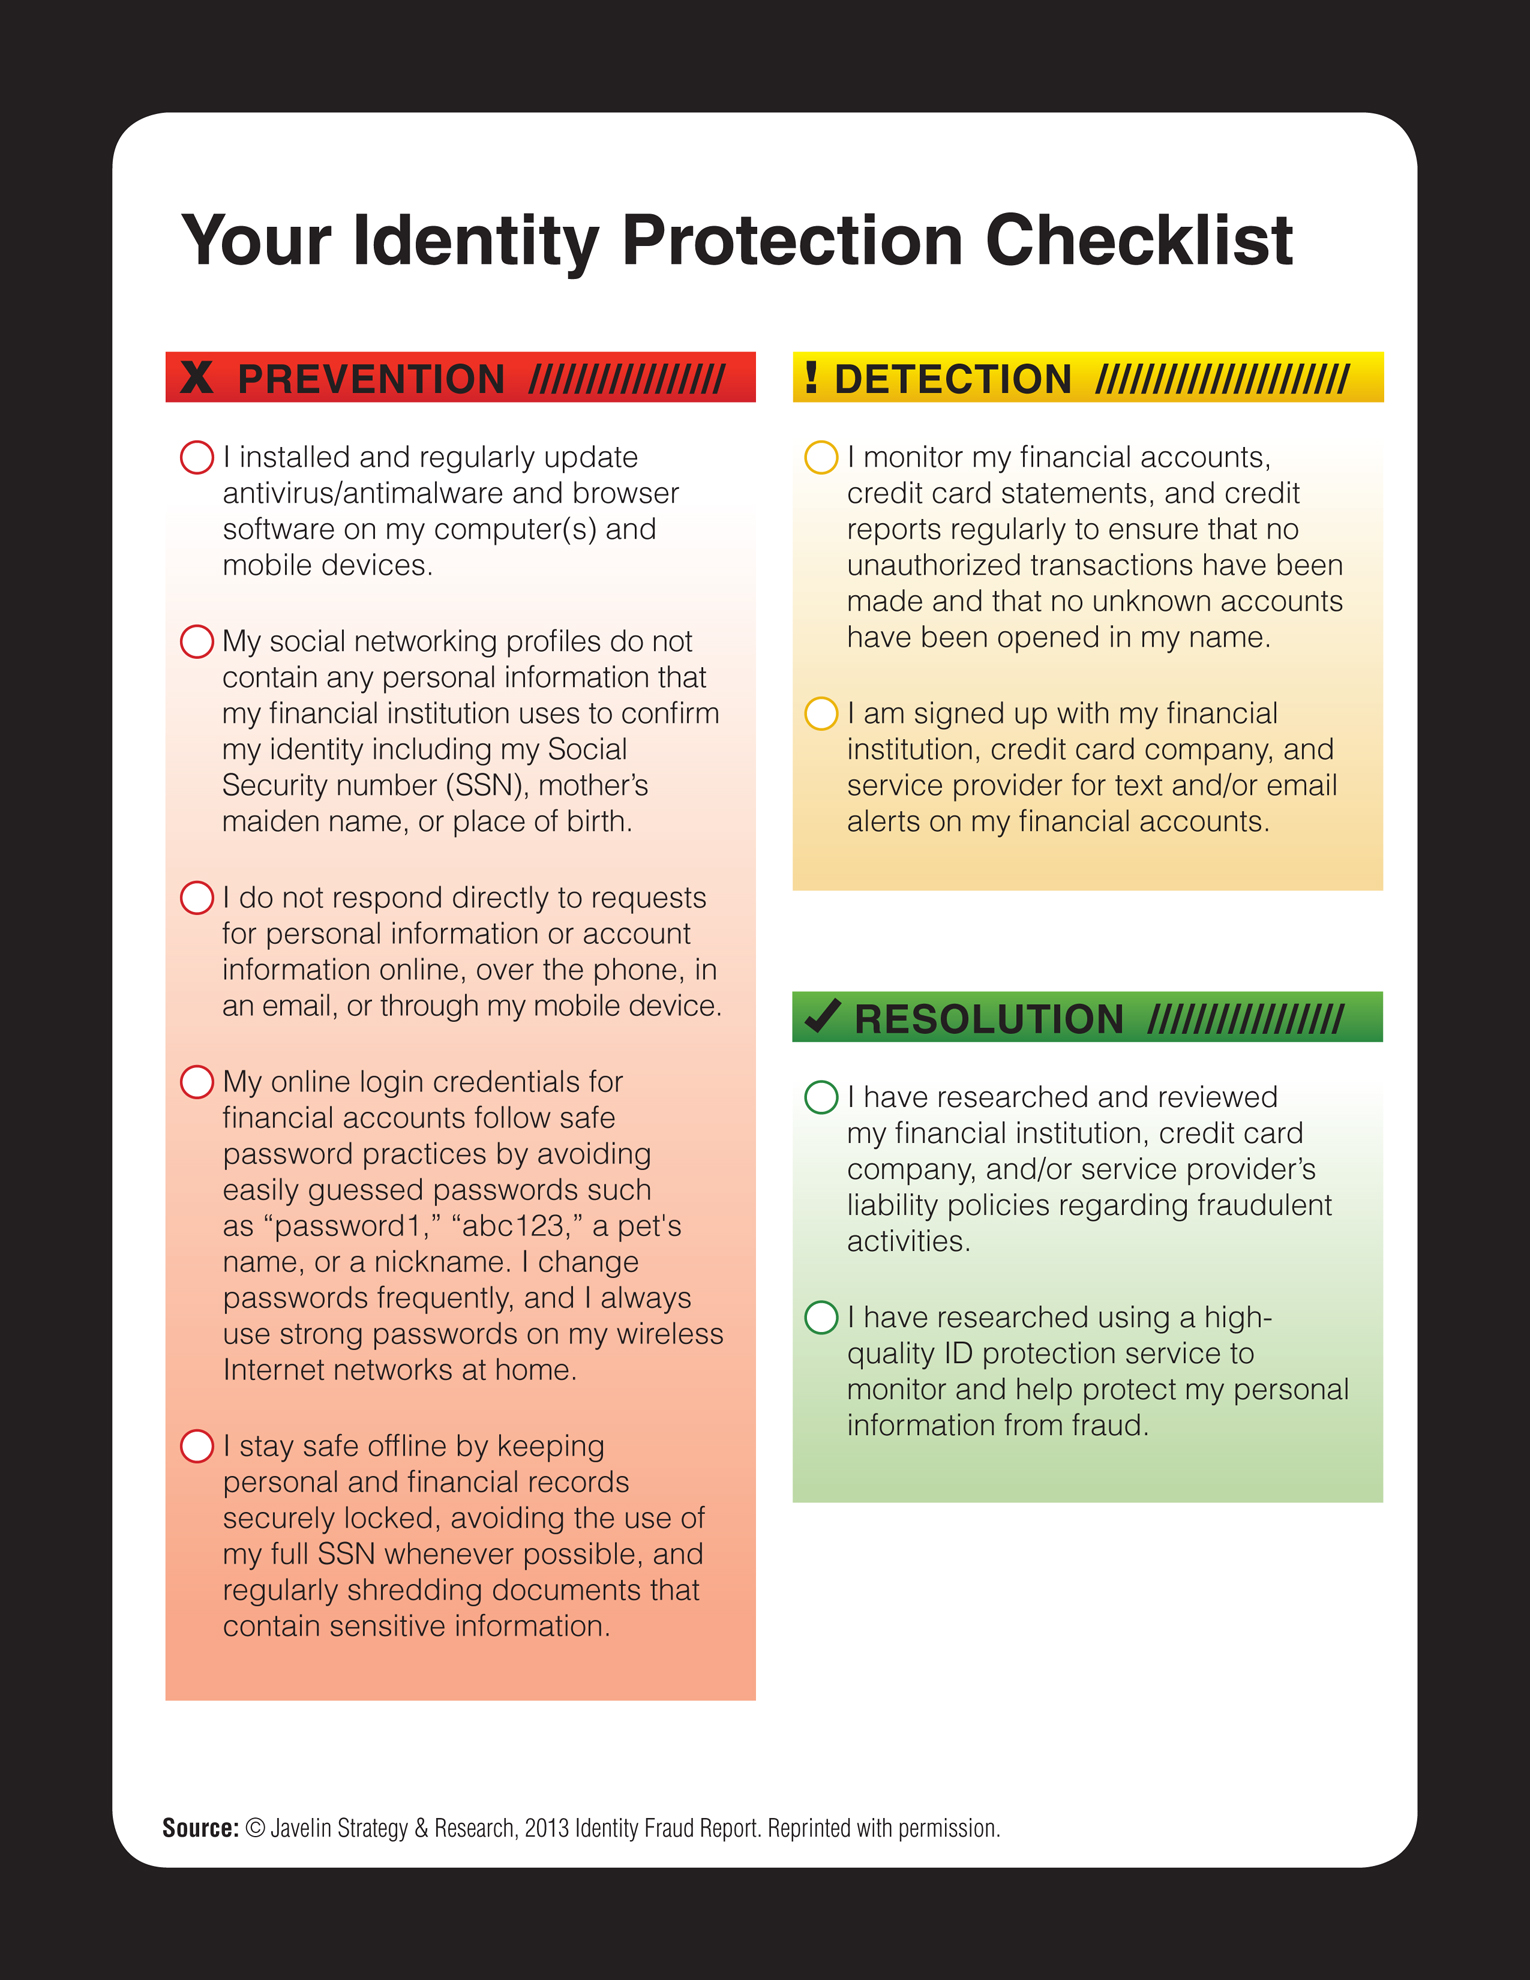 Madison county federal credit union your identity protection checklist fr 3104 identity checklistdd reheart Gallery